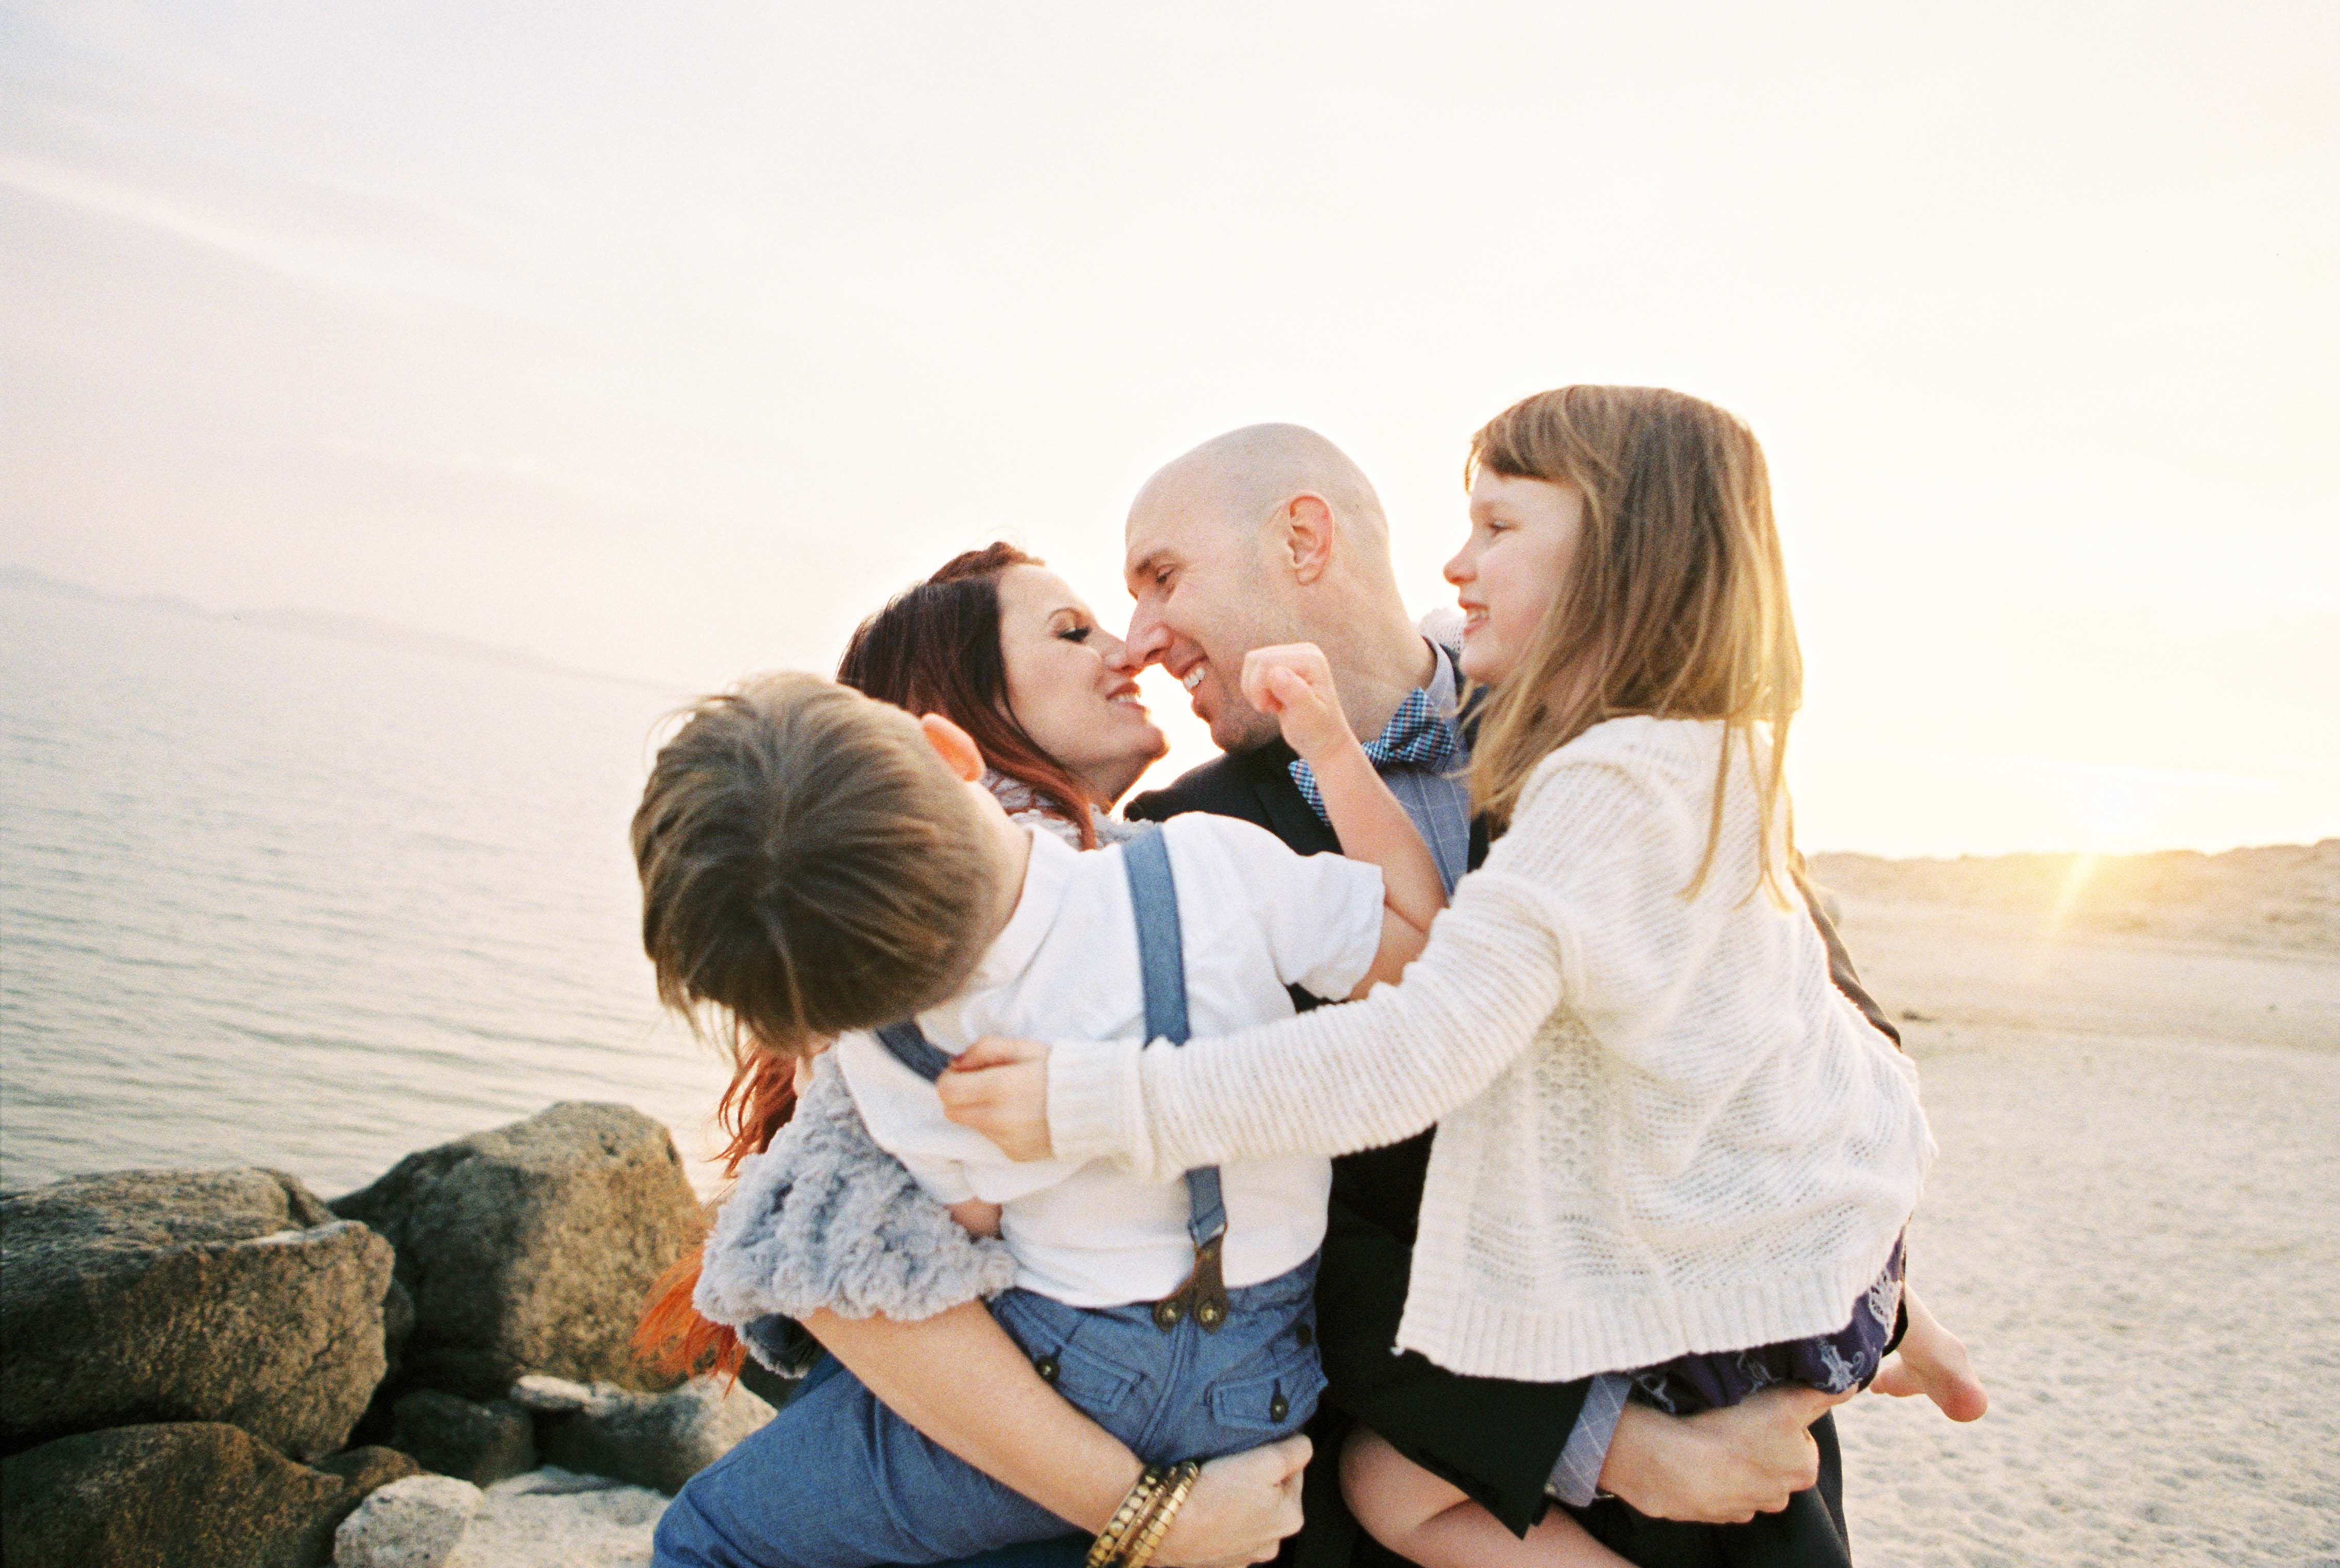 image by yan photo of family kissing and holding kids at sunset